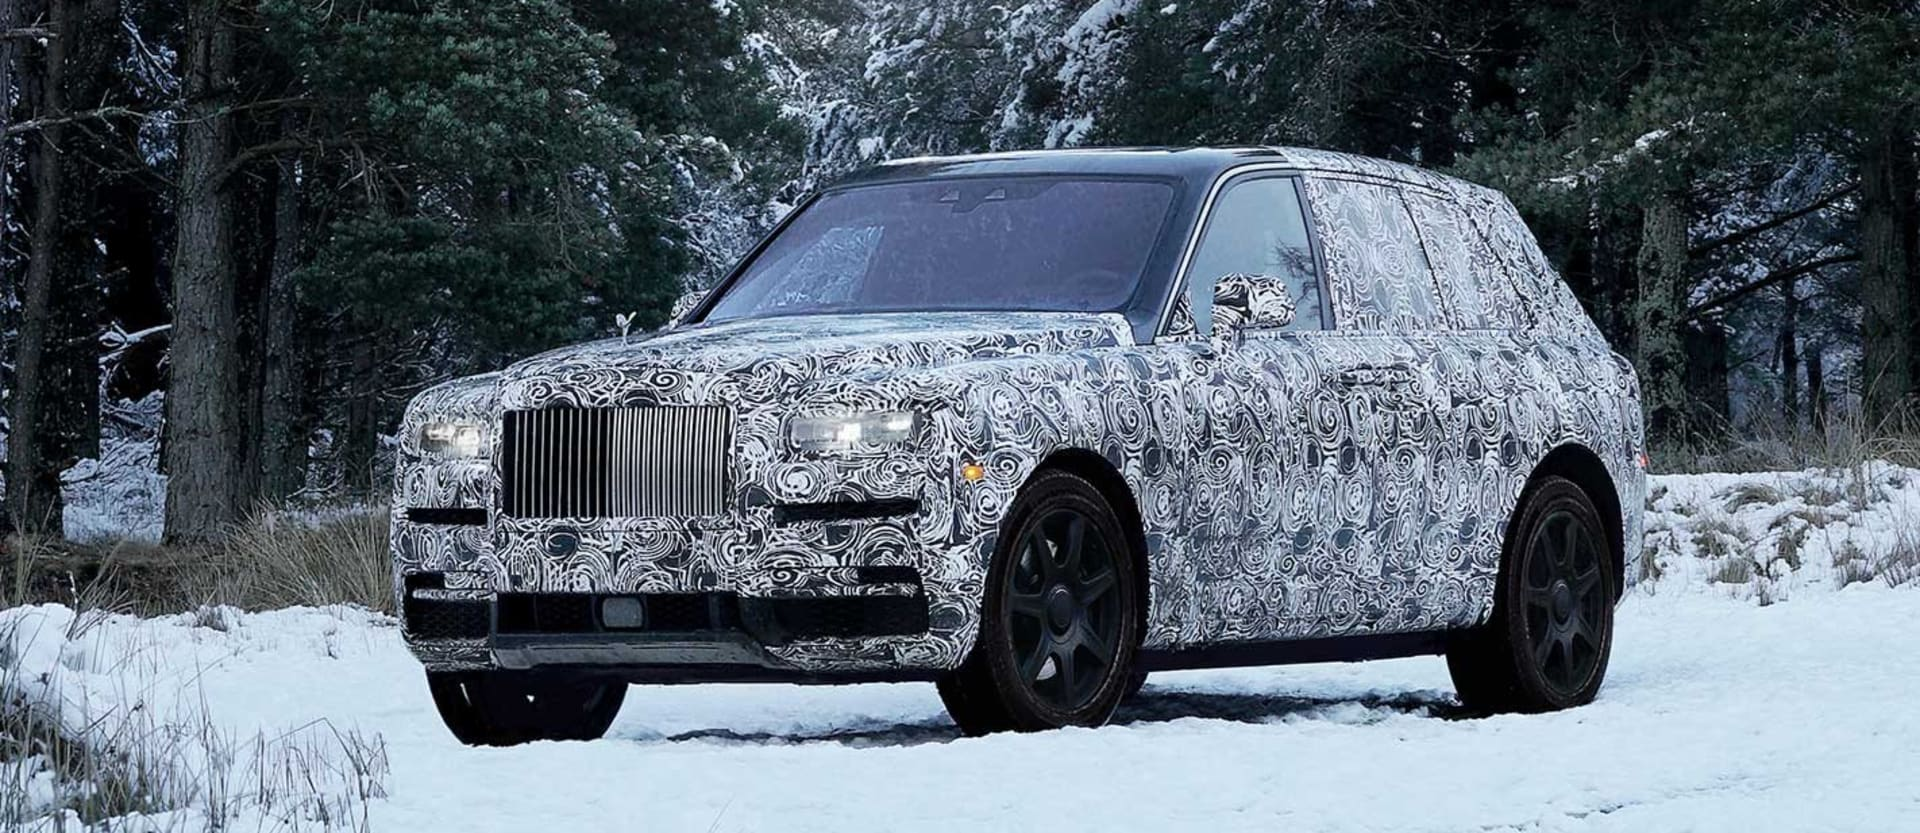 Rolls Royce SUV to be named Cullinan